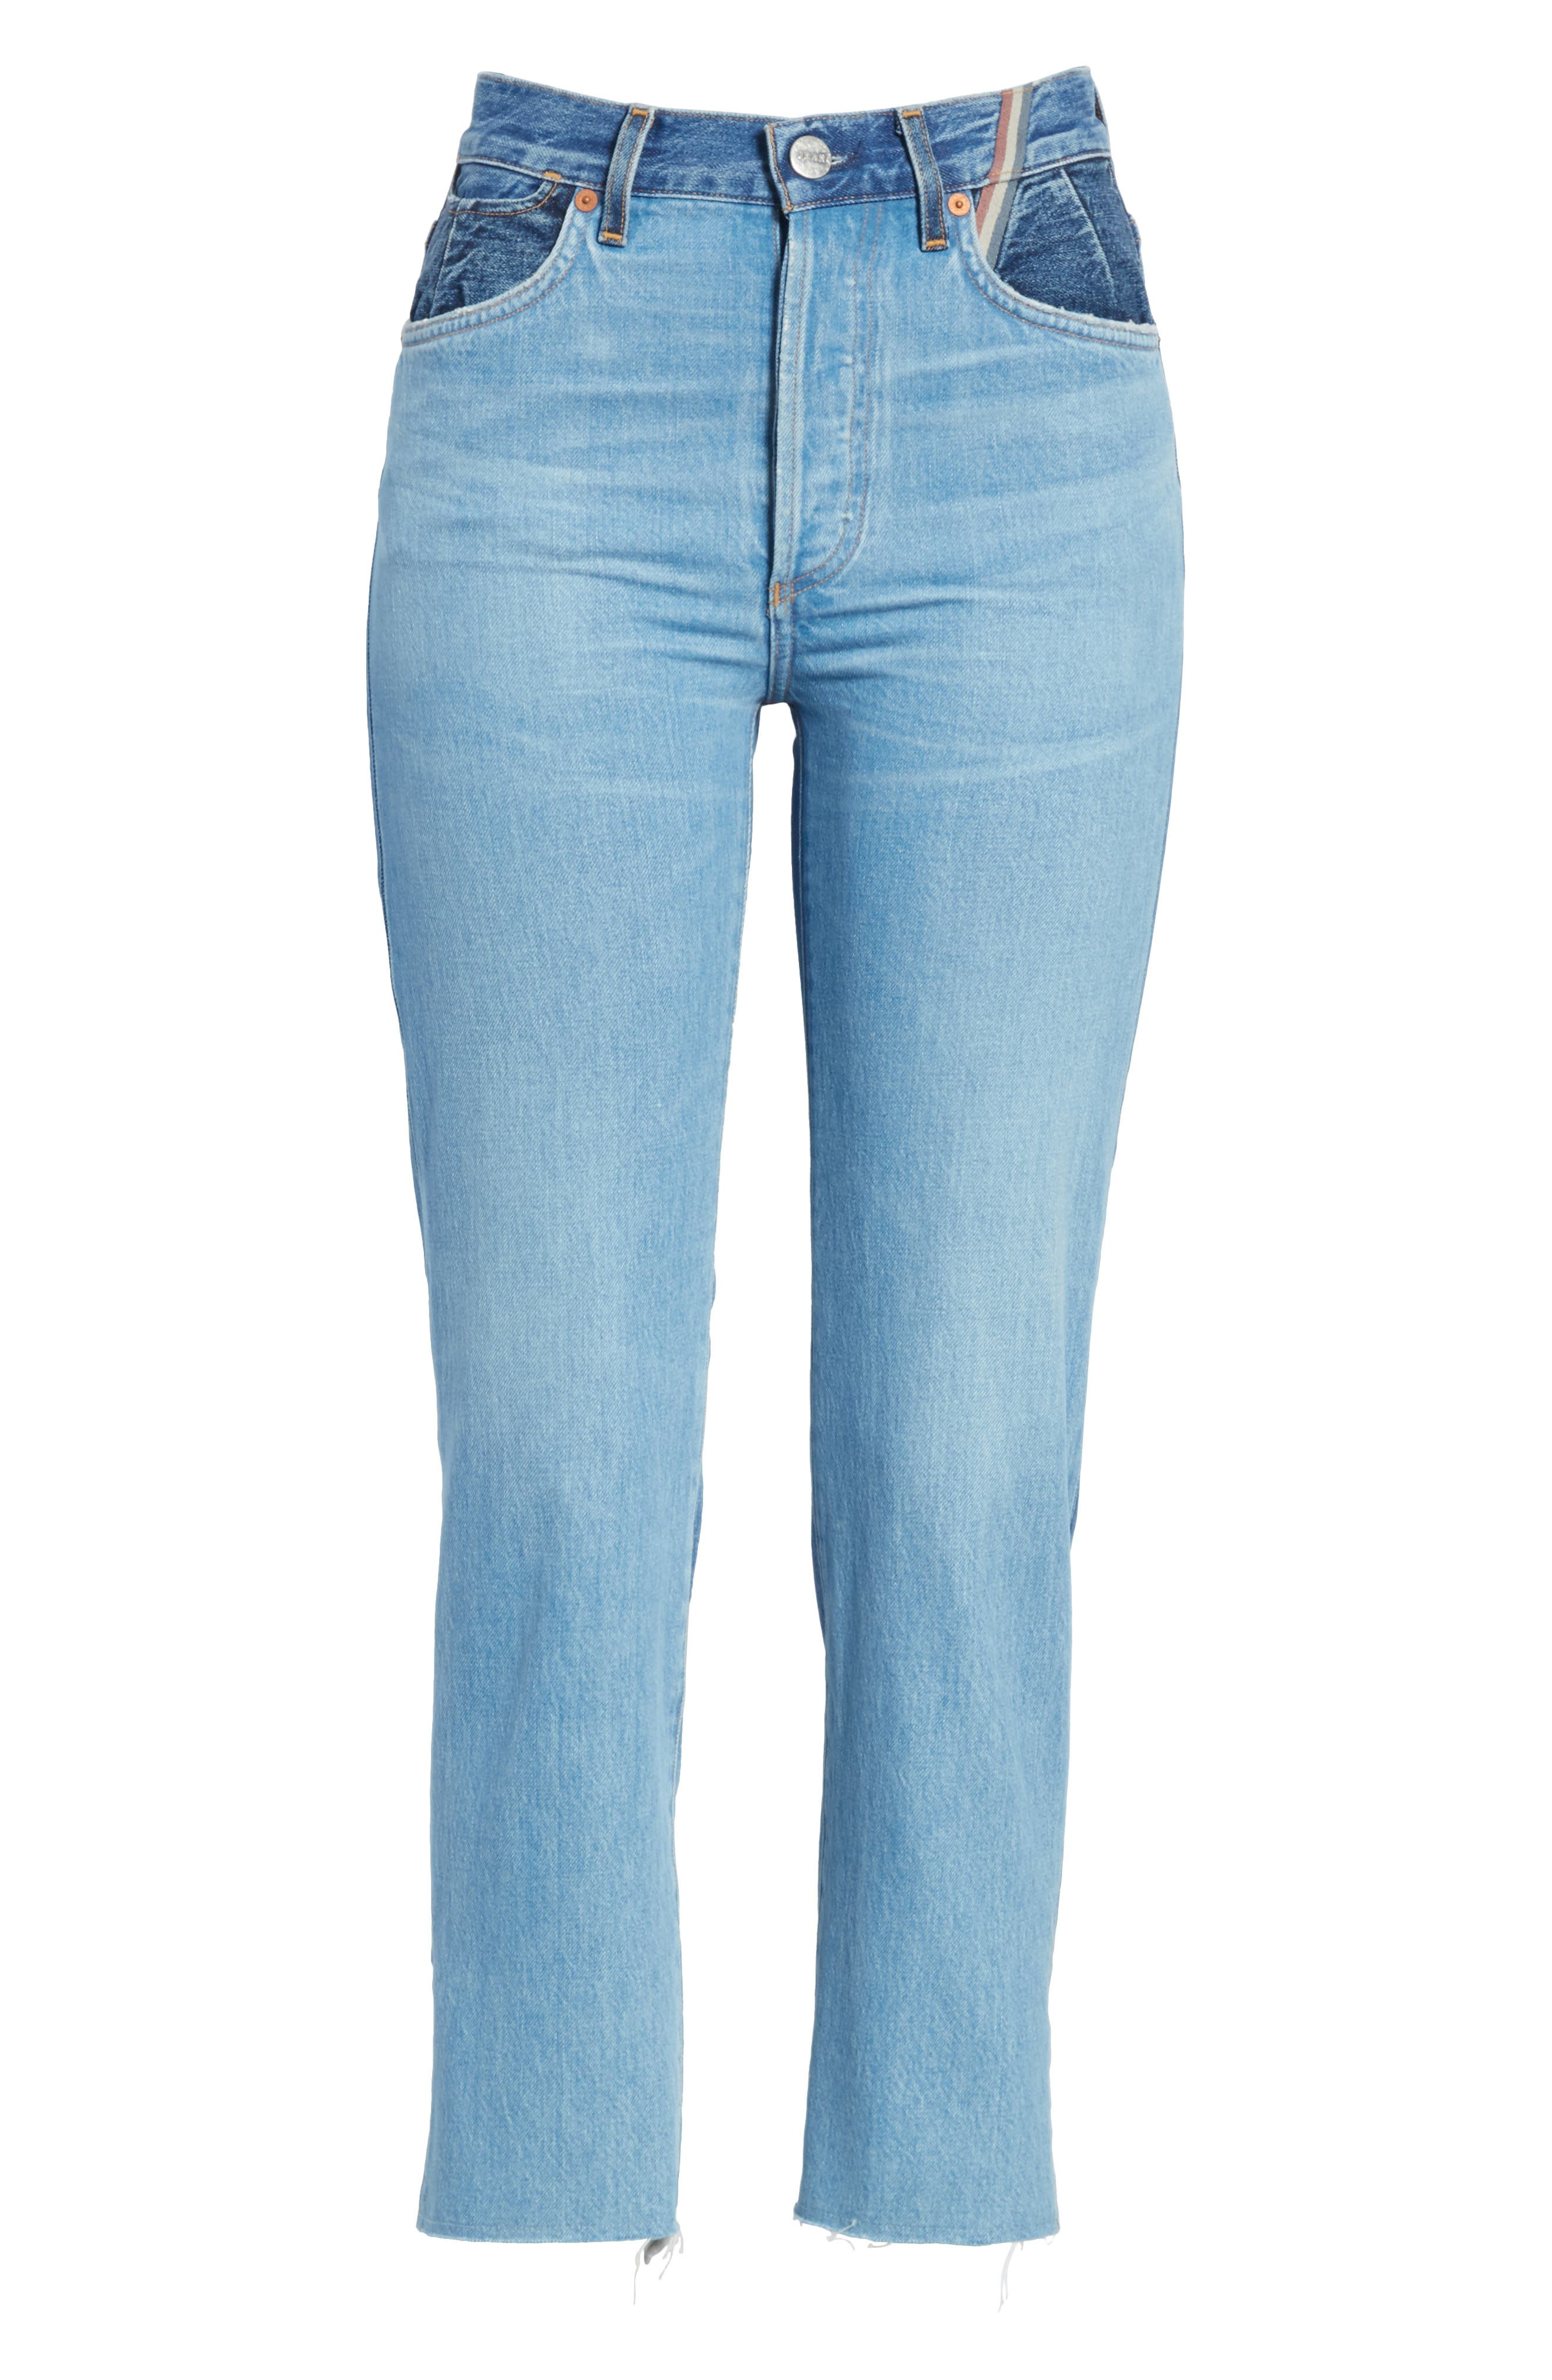 Hunter High Rise Straight Leg Crop Jeans,                             Alternate thumbnail 6, color,                             424